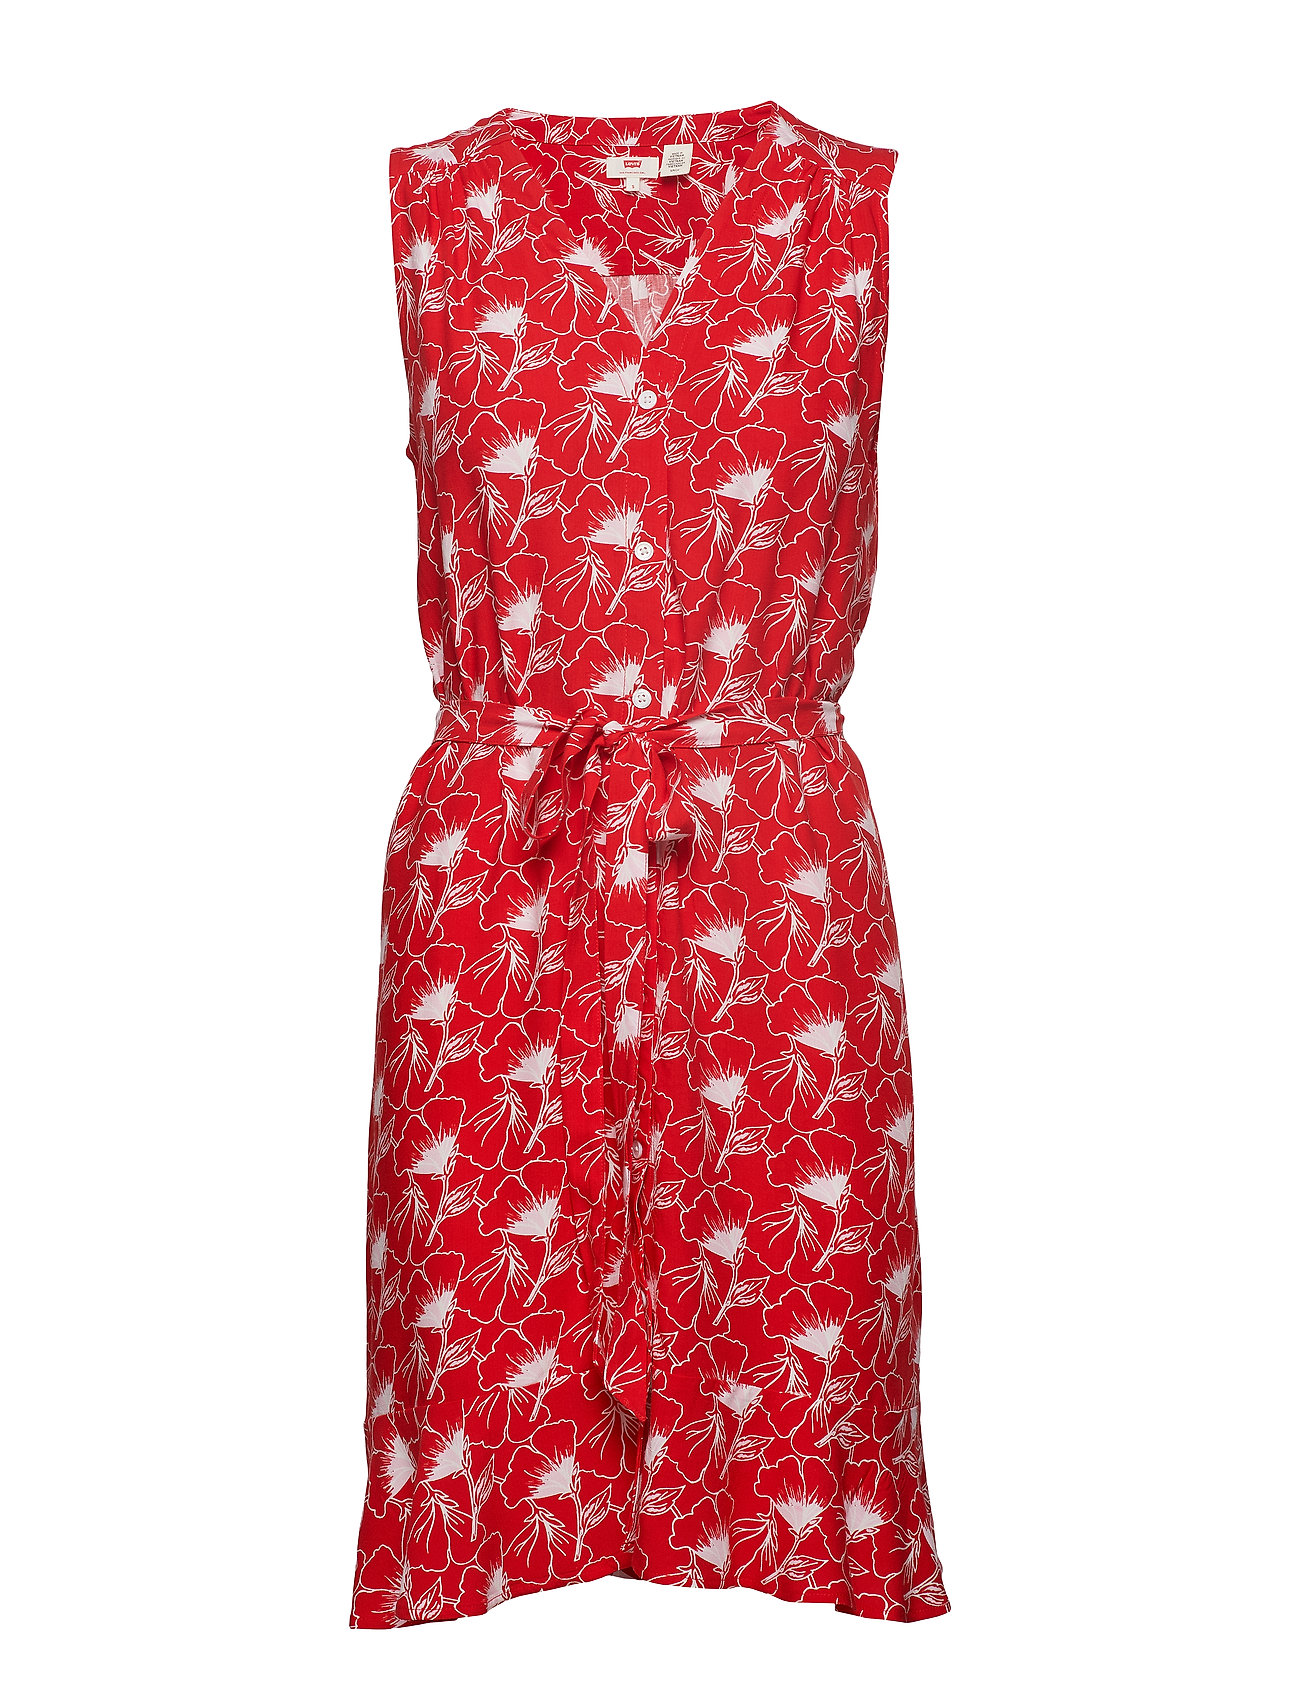 25998052 Neda Sleeveless Dress Flipped (Reds) (599 kr) - LEVI´S Women ...